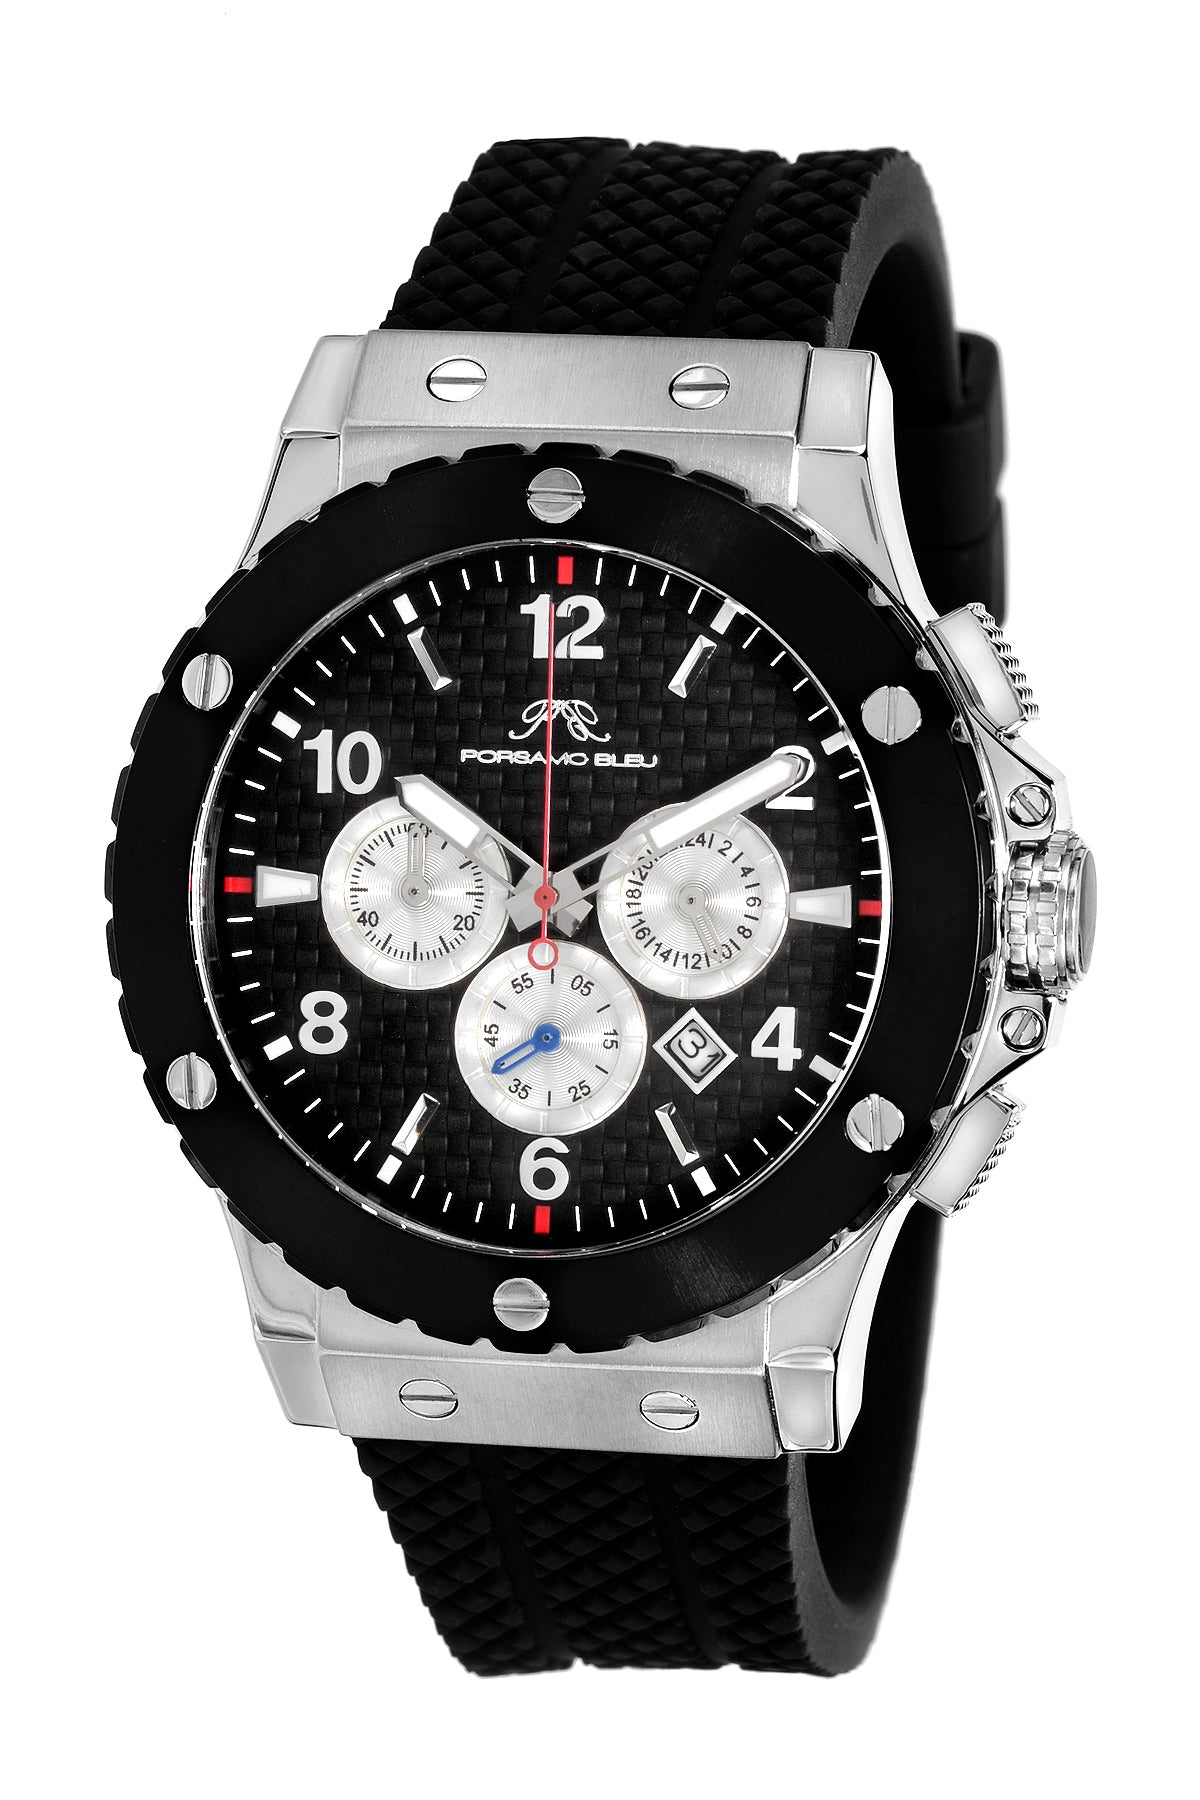 Porsamo Bleu Marcus luxury chronograph men's watch, silicone strap, silver, black 651BMAR